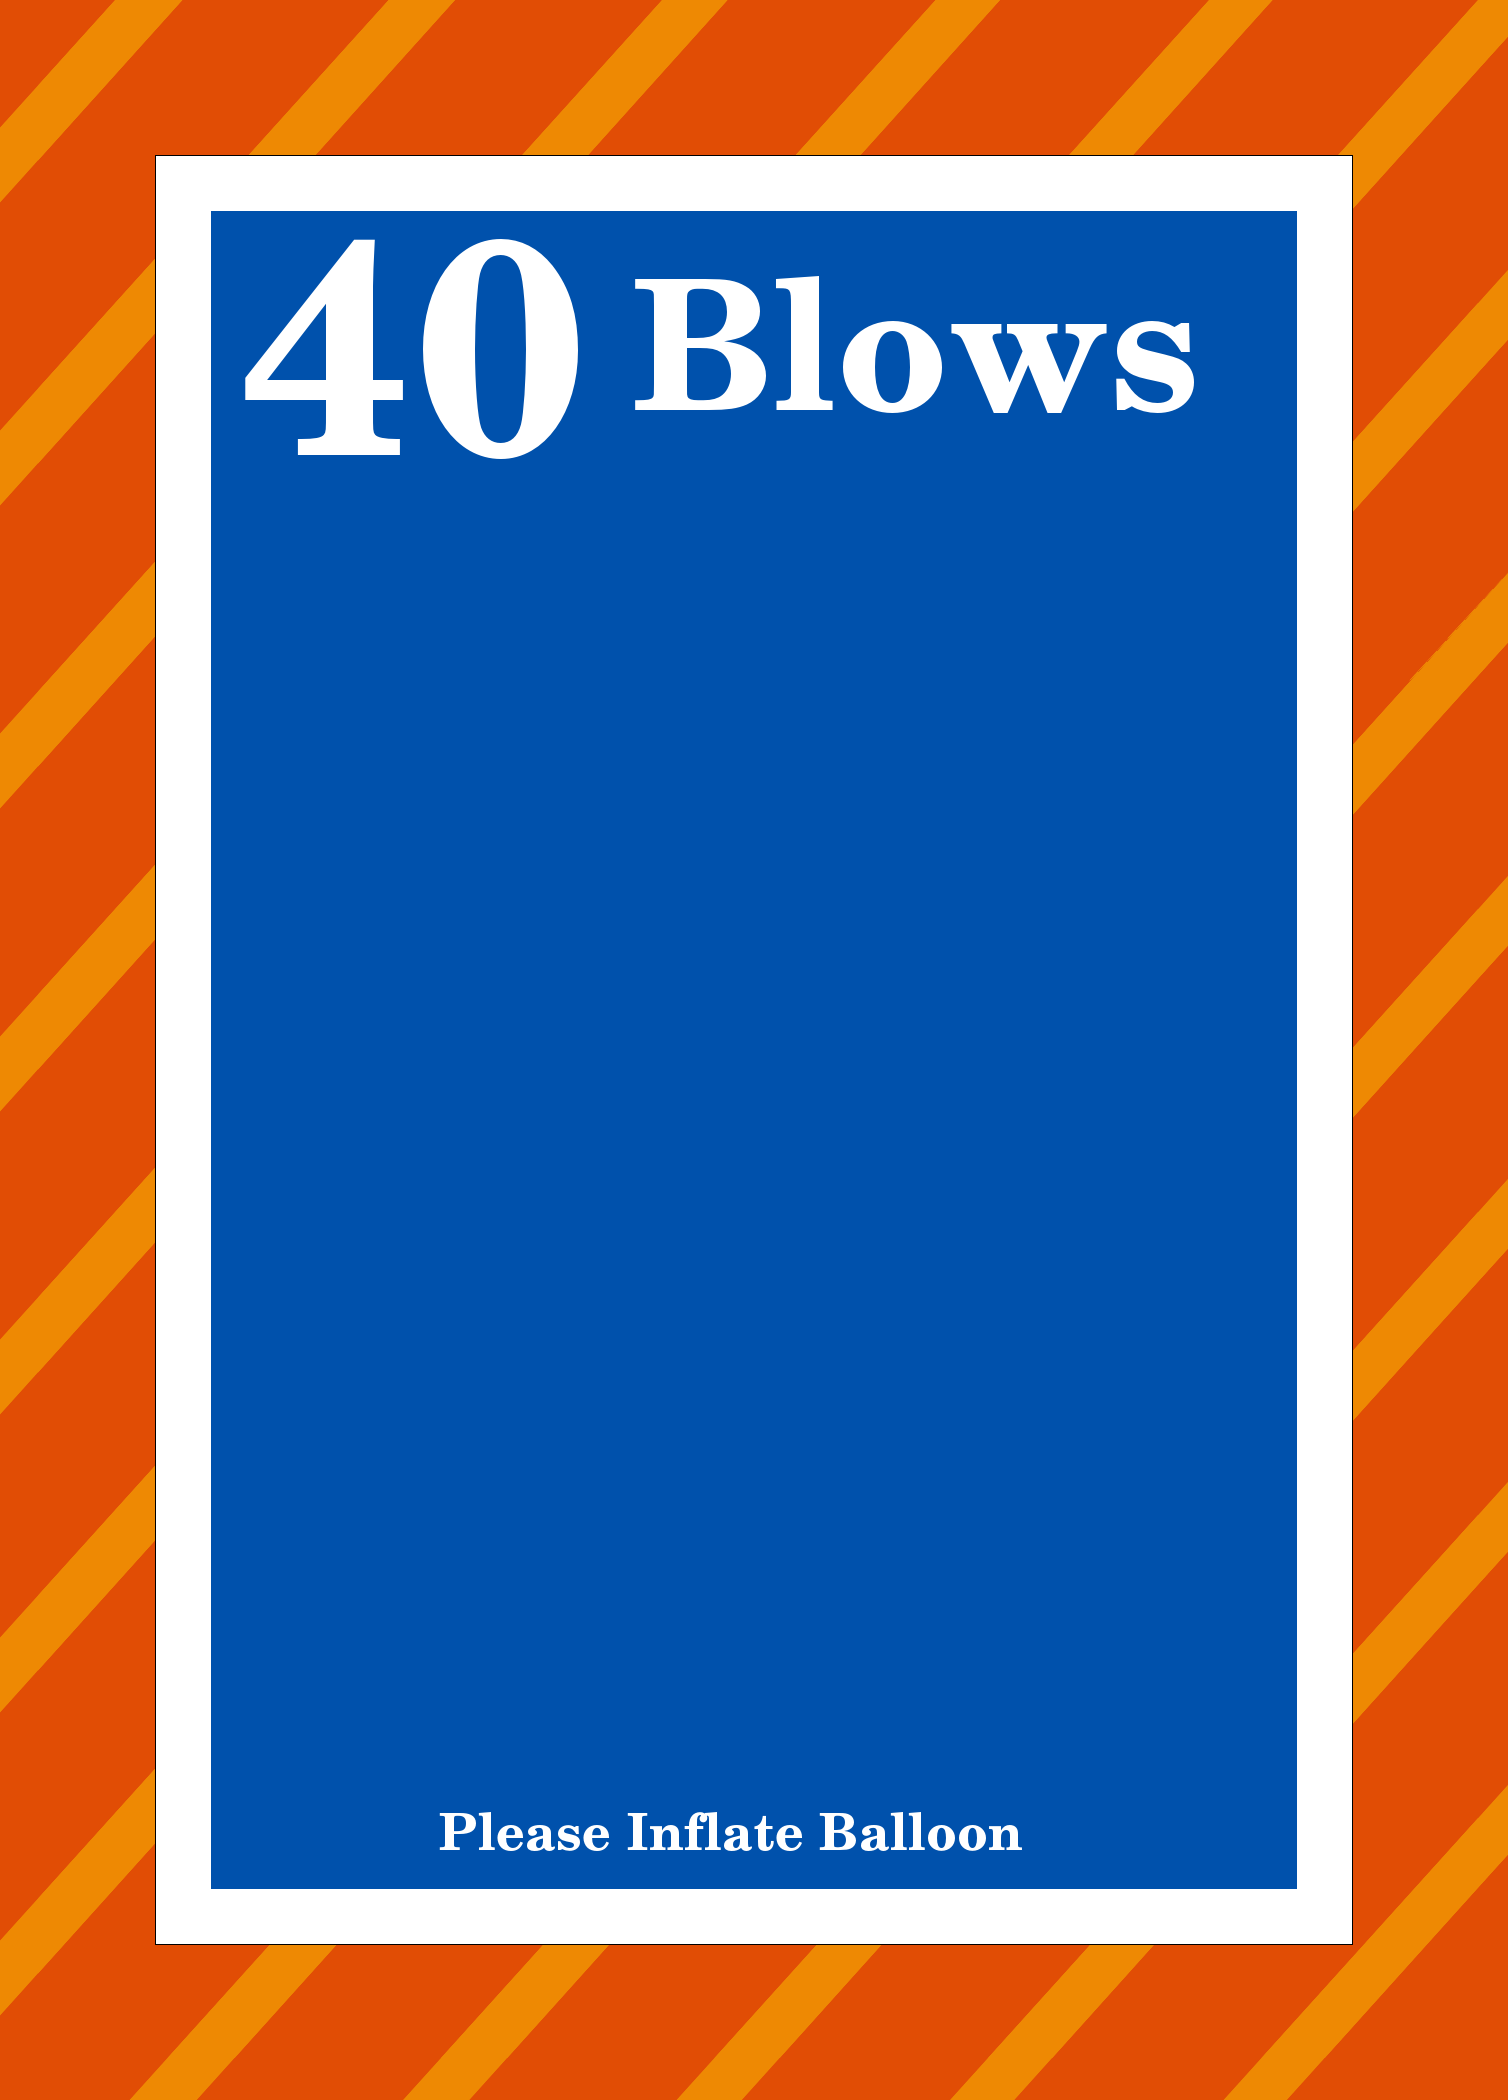 40 Blows Balloon Invitation - Click Image to Close